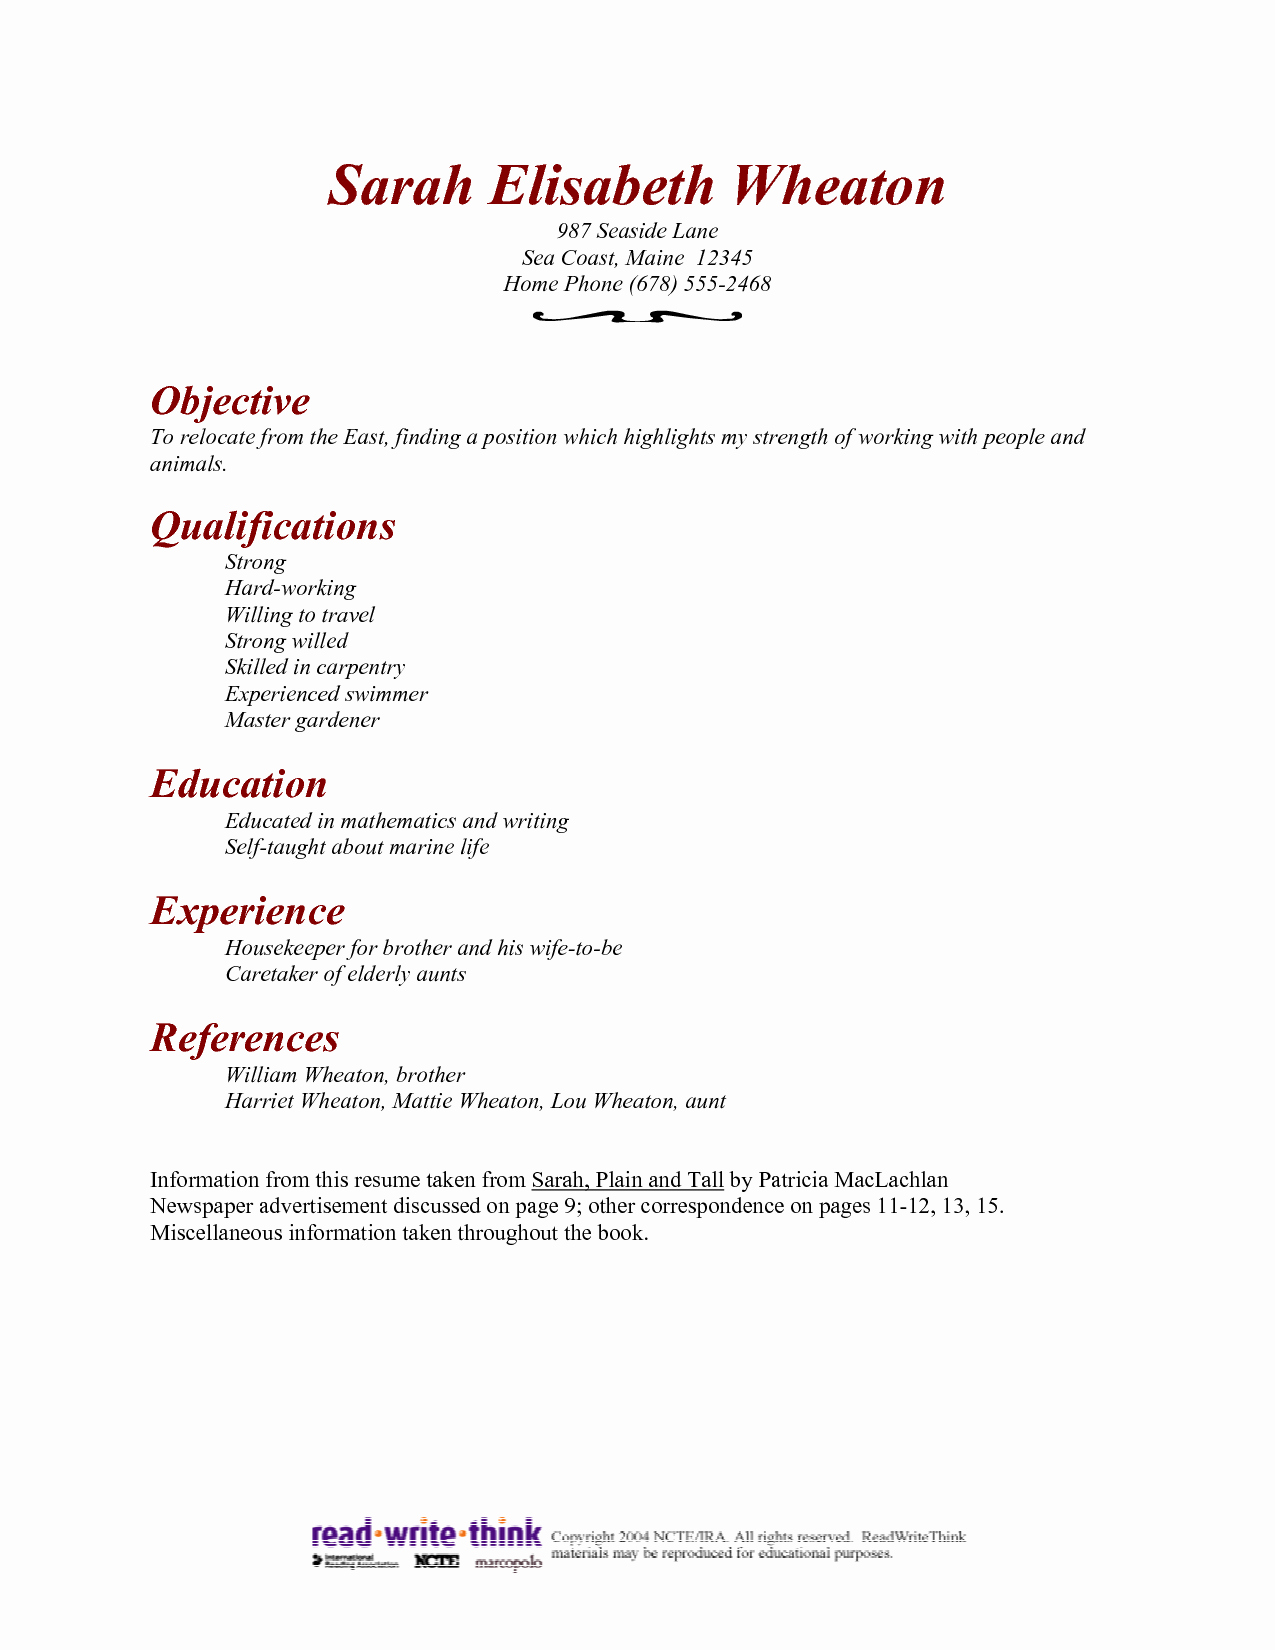 Housekeeping Resume Objective Resume Ideas